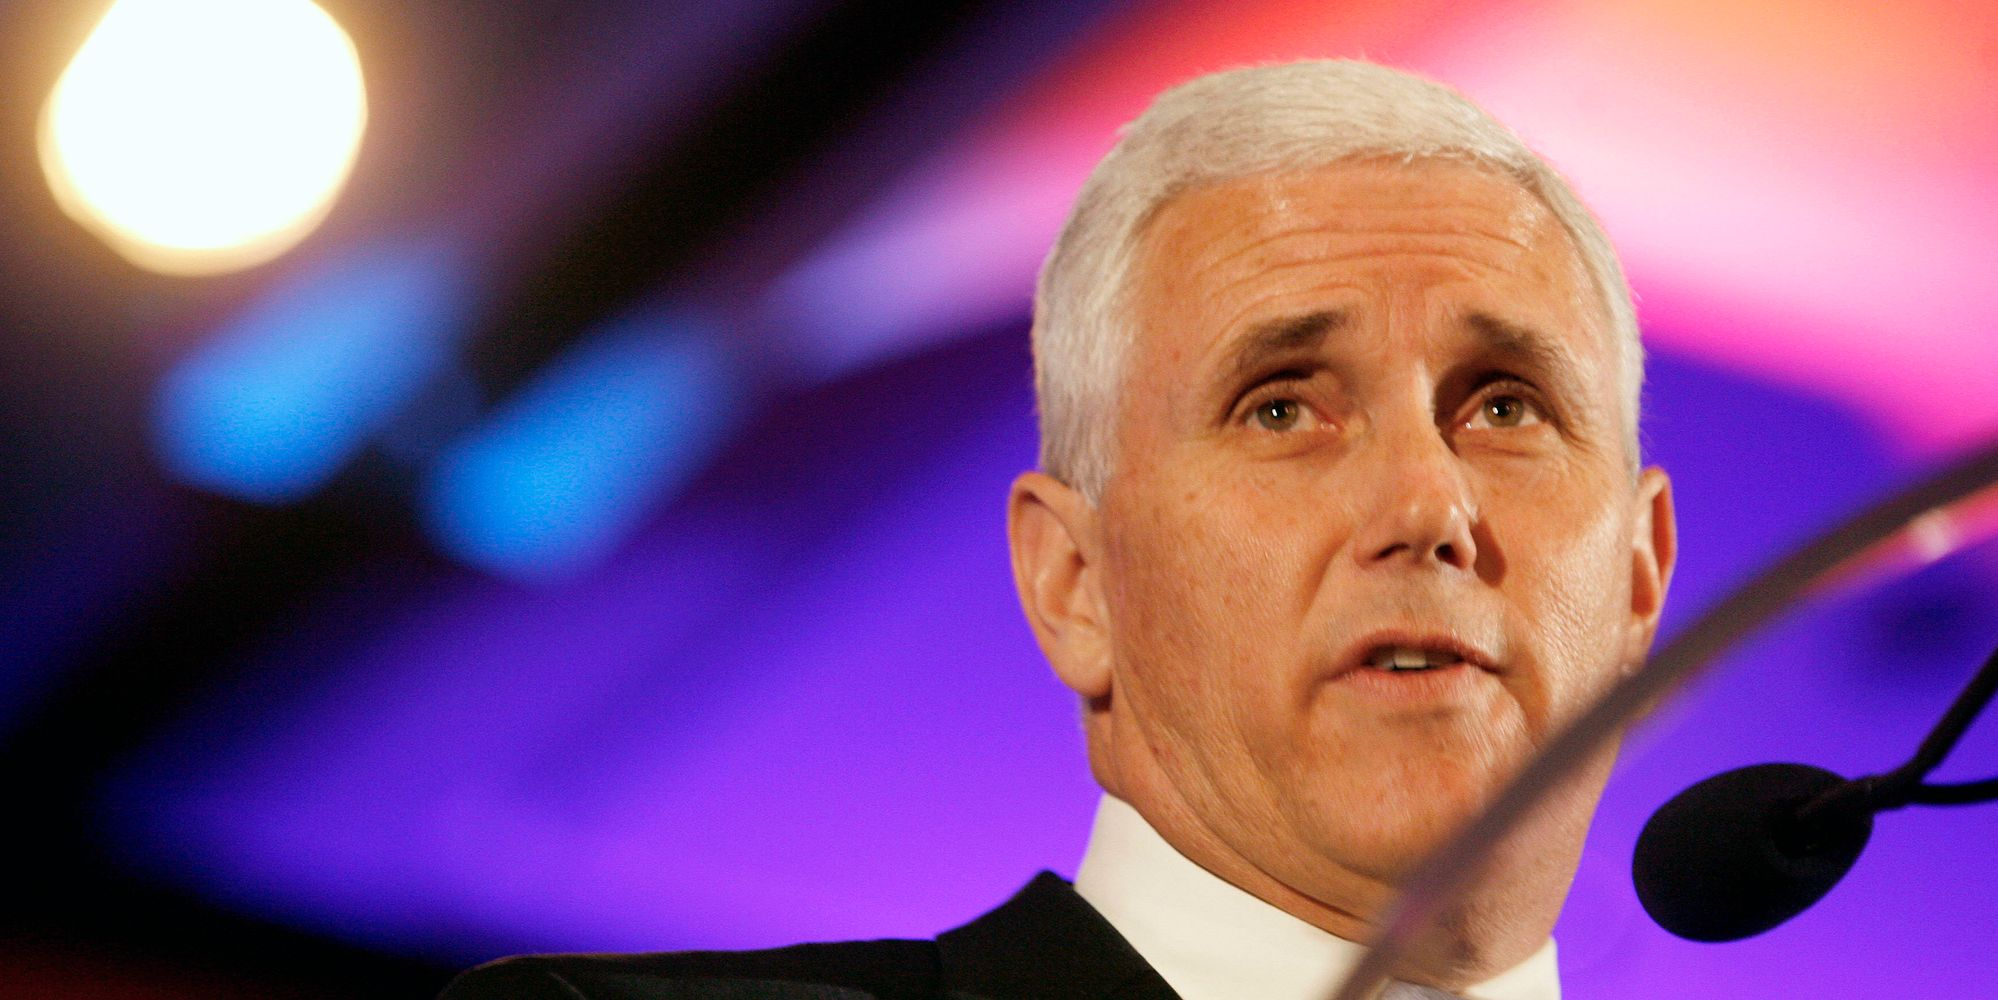 Donald Trump Reportedly Taps Mike Pence As His Vice Presidential Running Mate